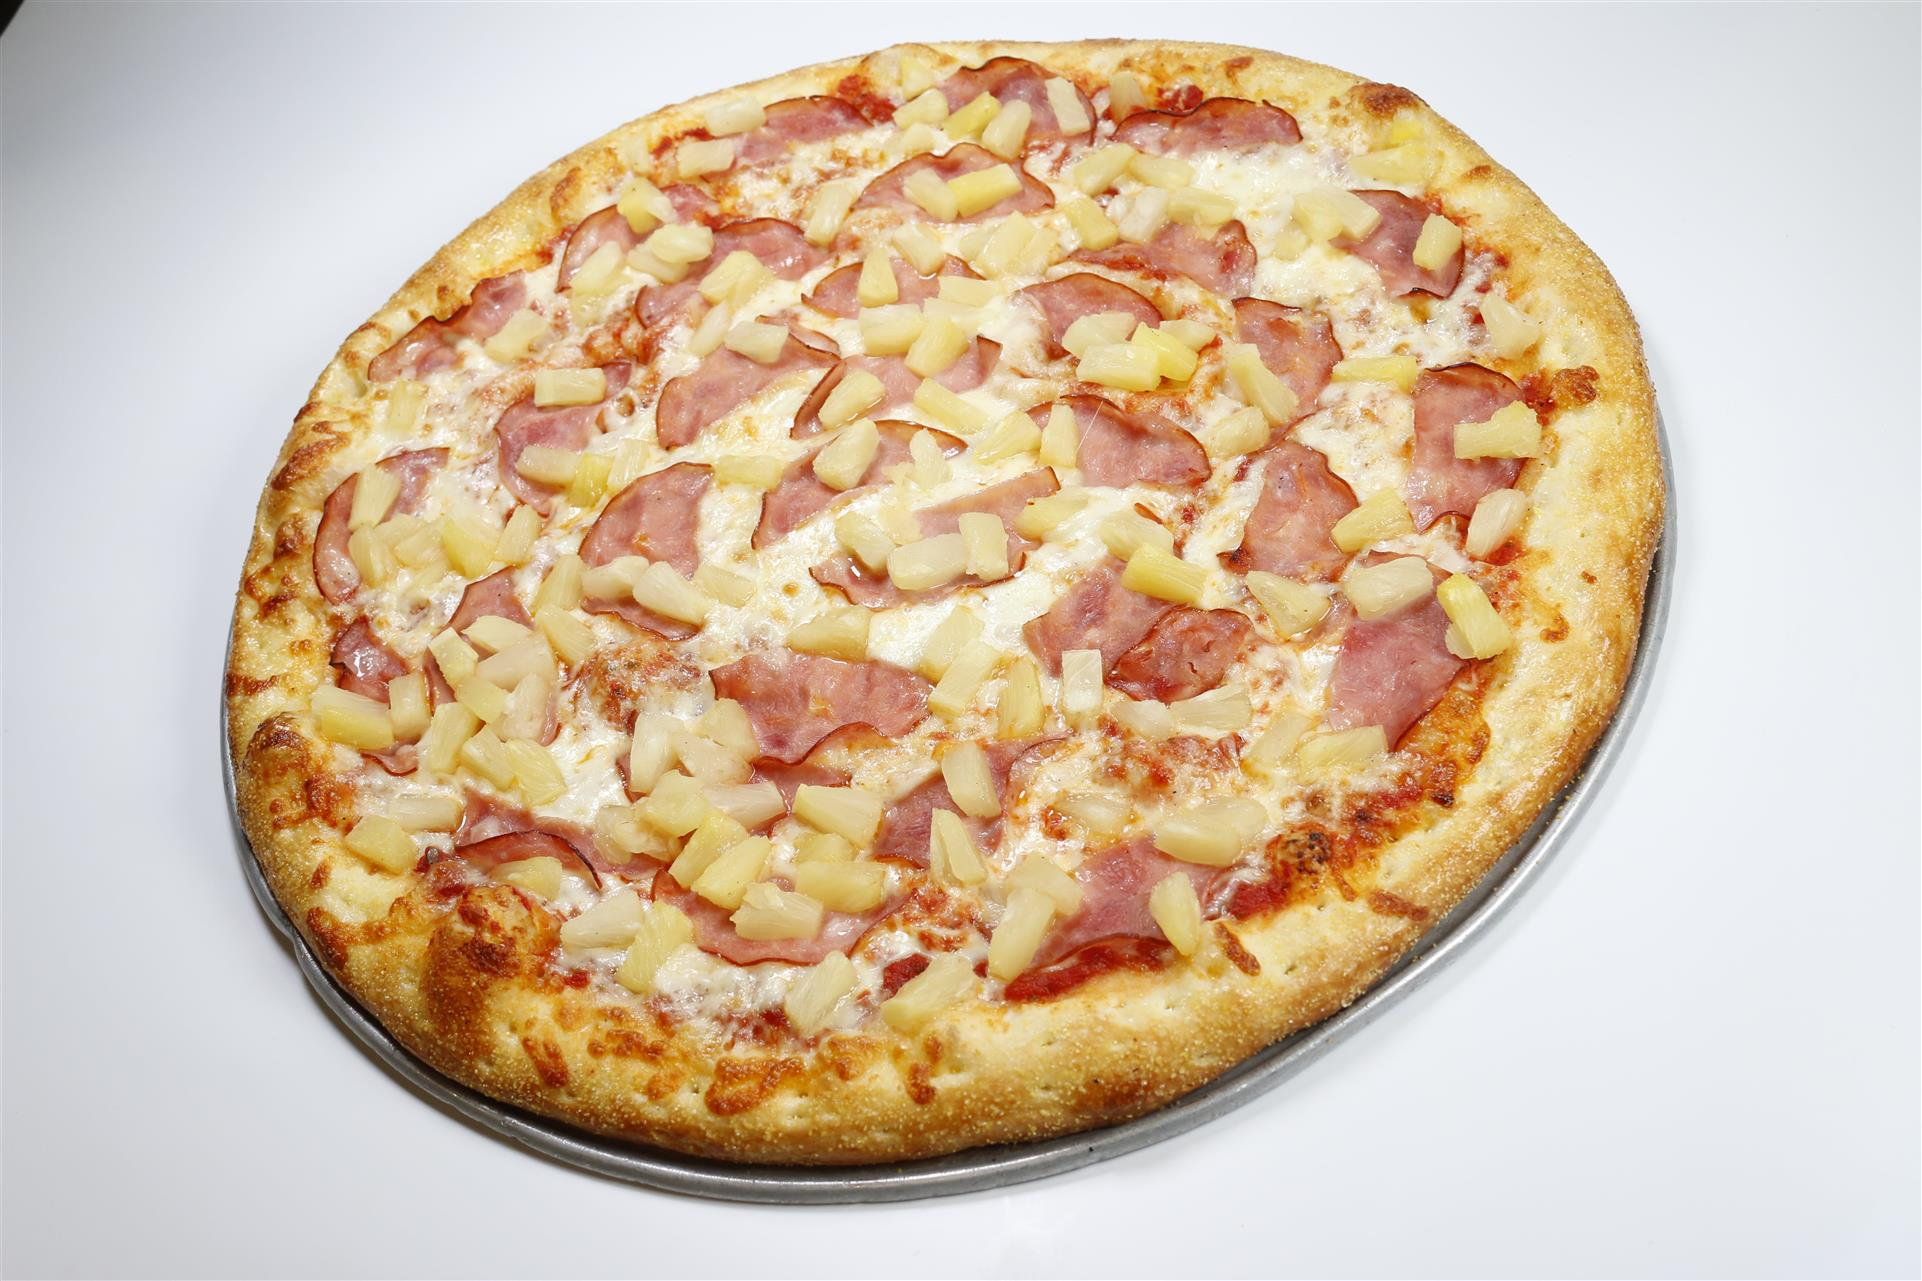 Tomato Sauce, Mozzarella, Canadian Bacon, Pineapple